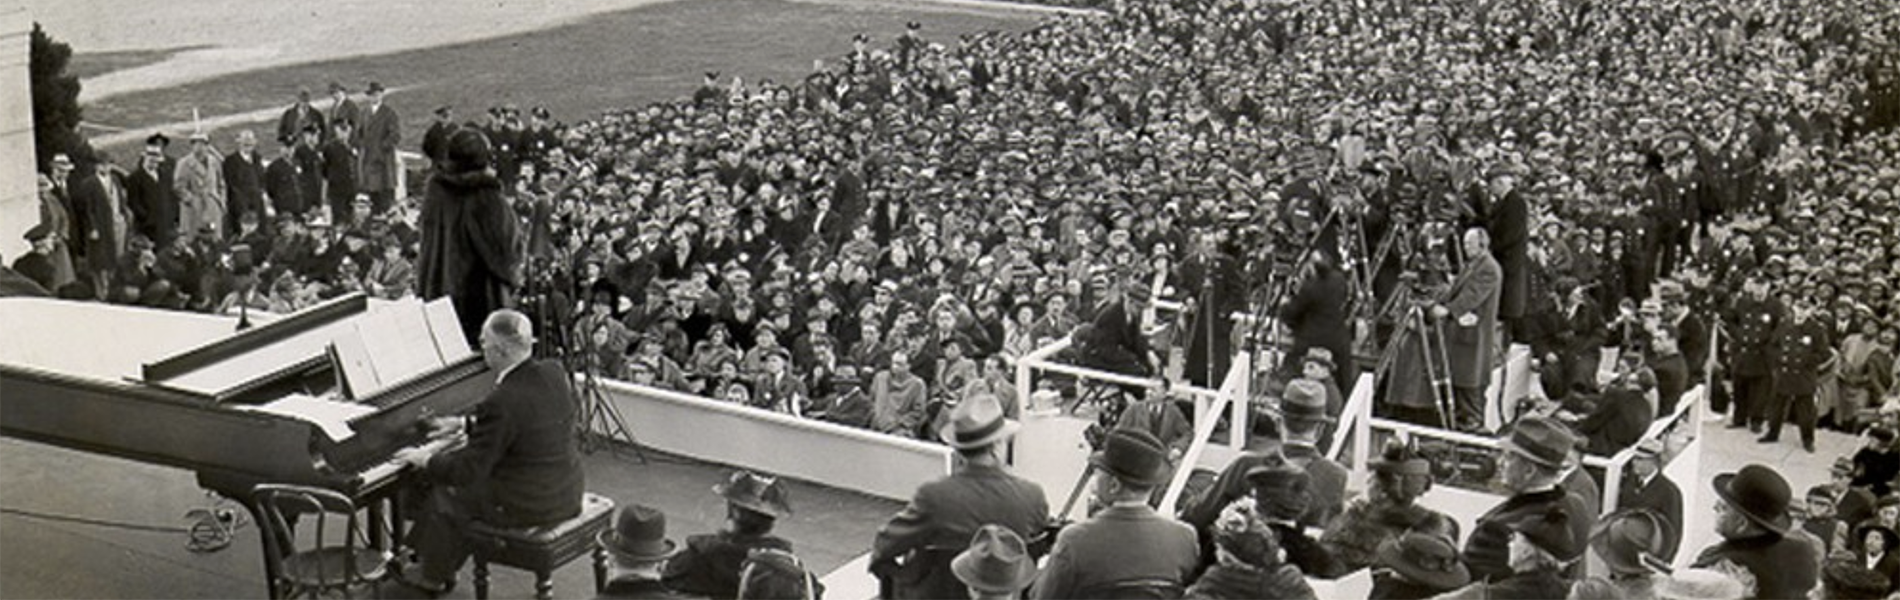 A sea of thousands of onlookers watch a singer in front of a piano in 30s era attire